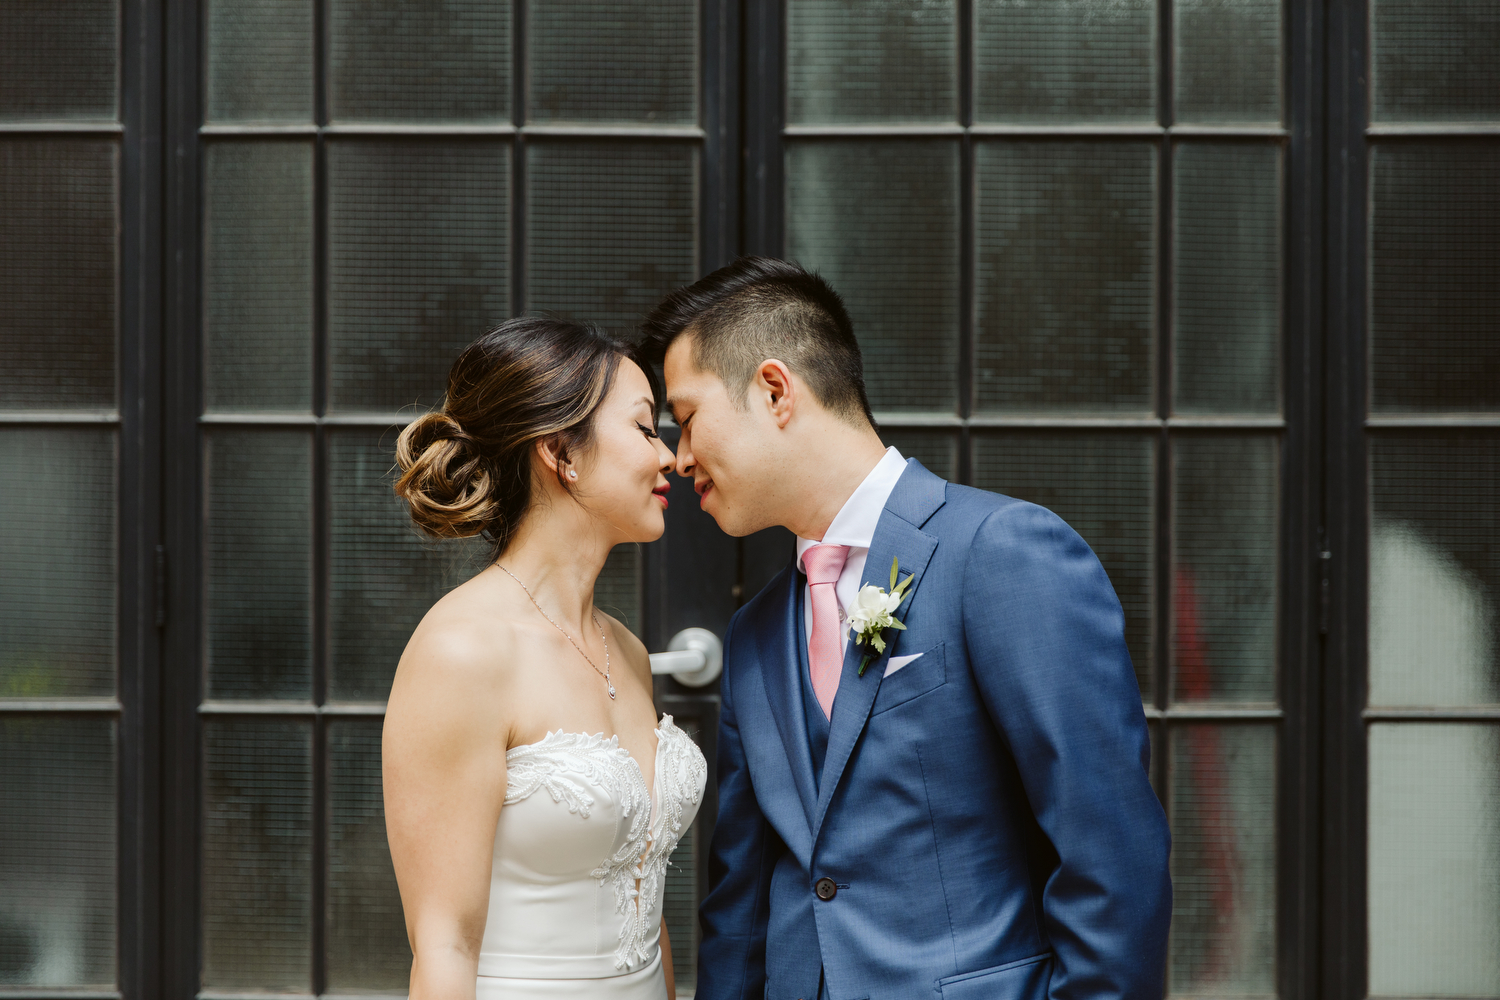 creative modern wedding photography by Magnolia Studios Toronto